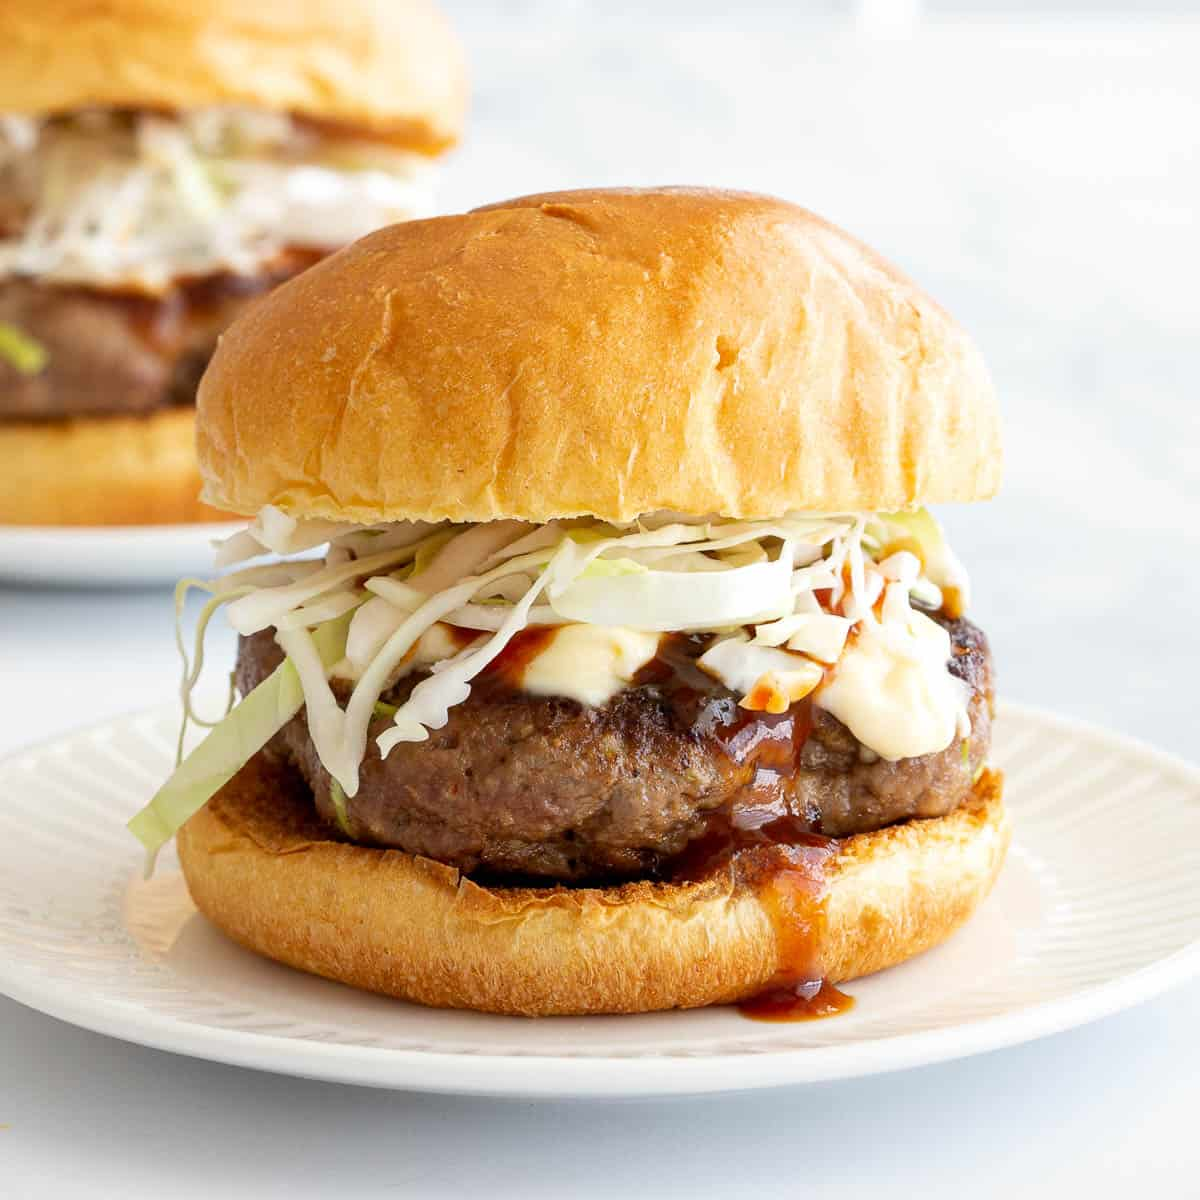 Burger on a white plate dripping with bbq sauce.